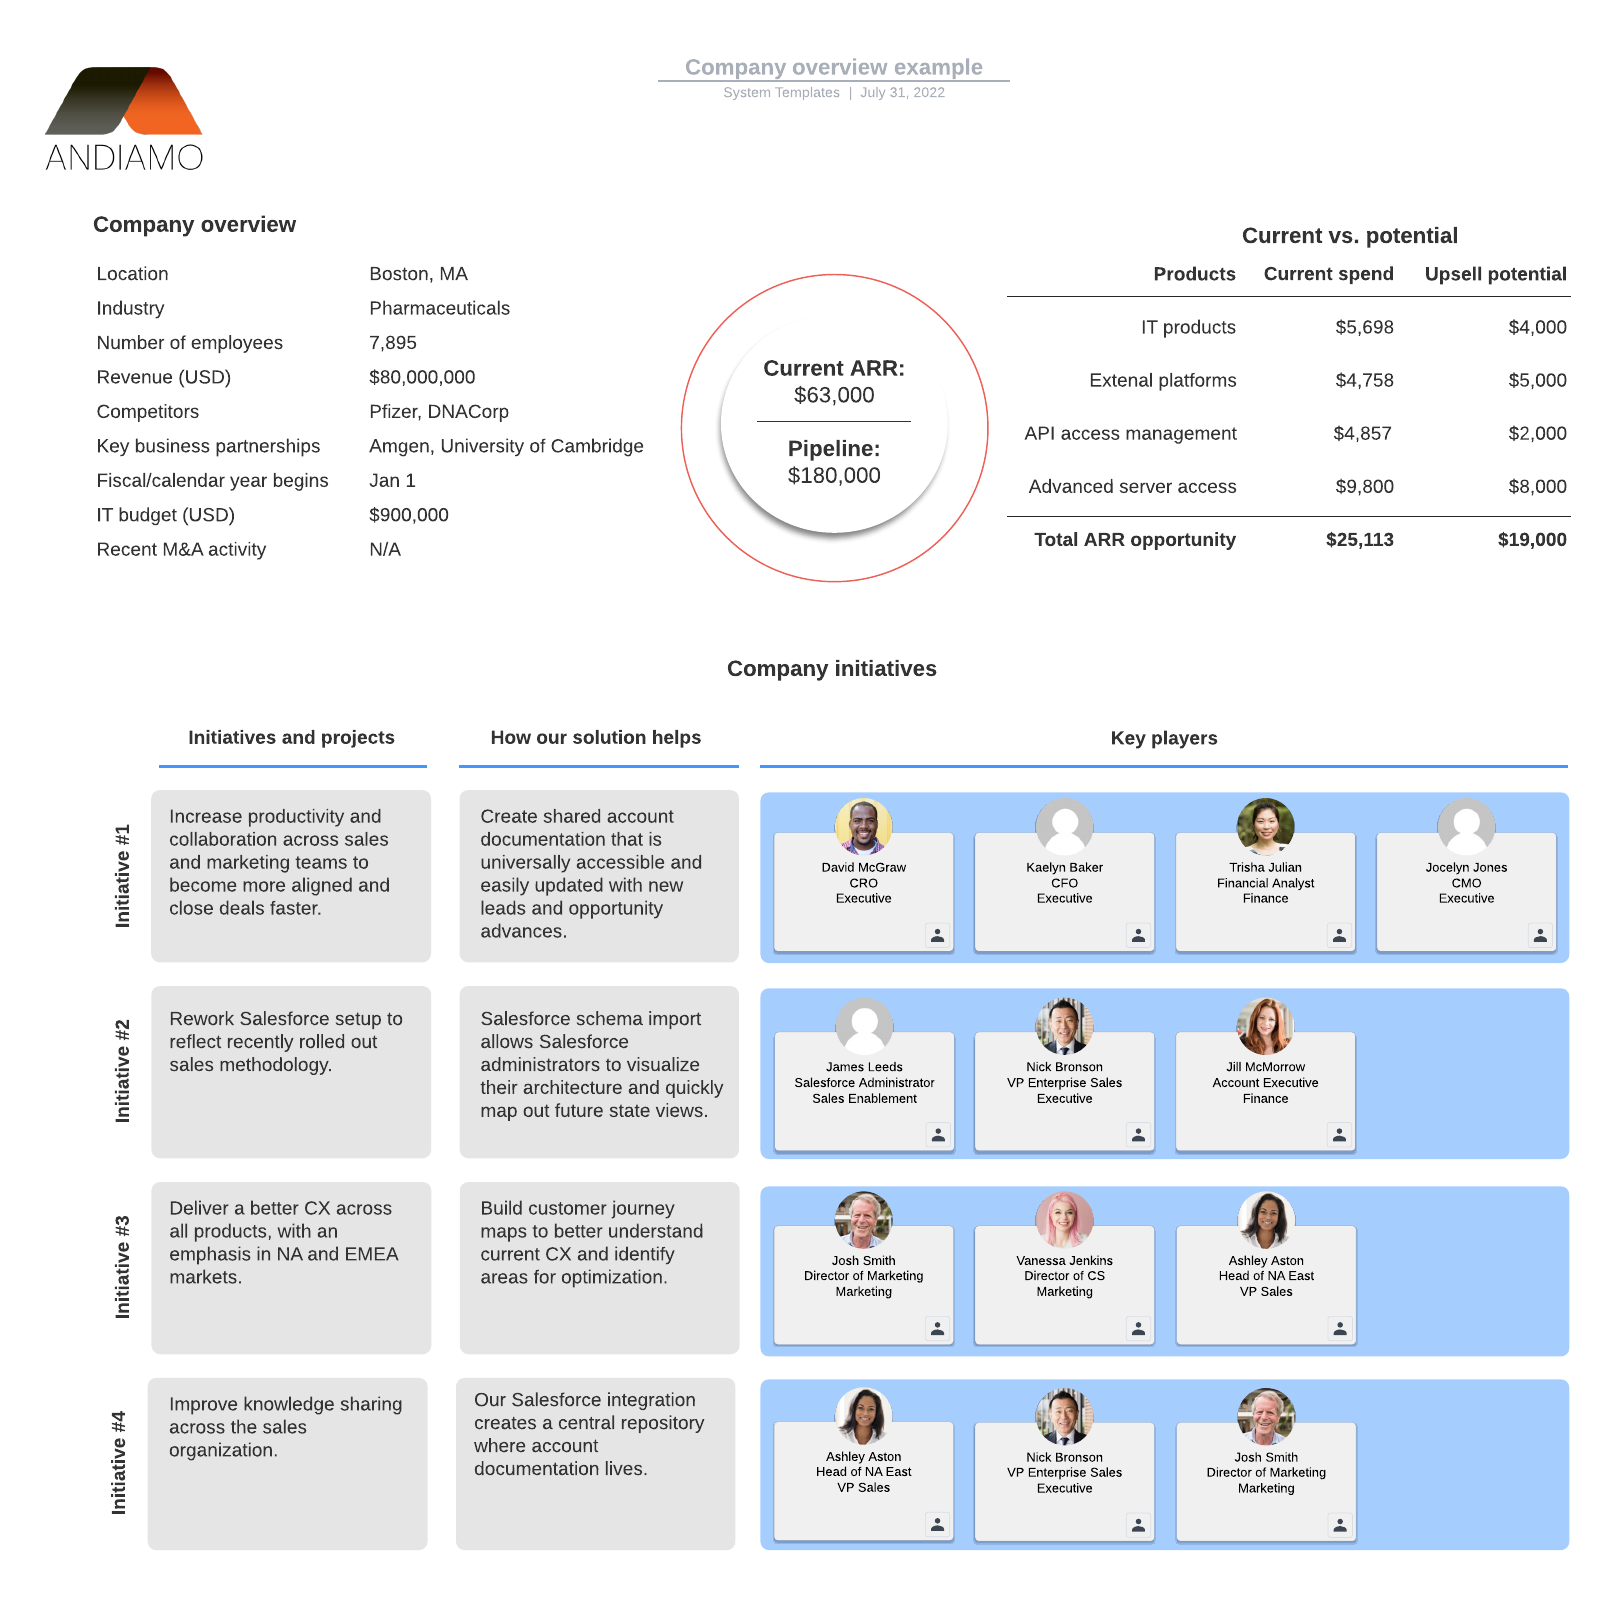 Company overview example